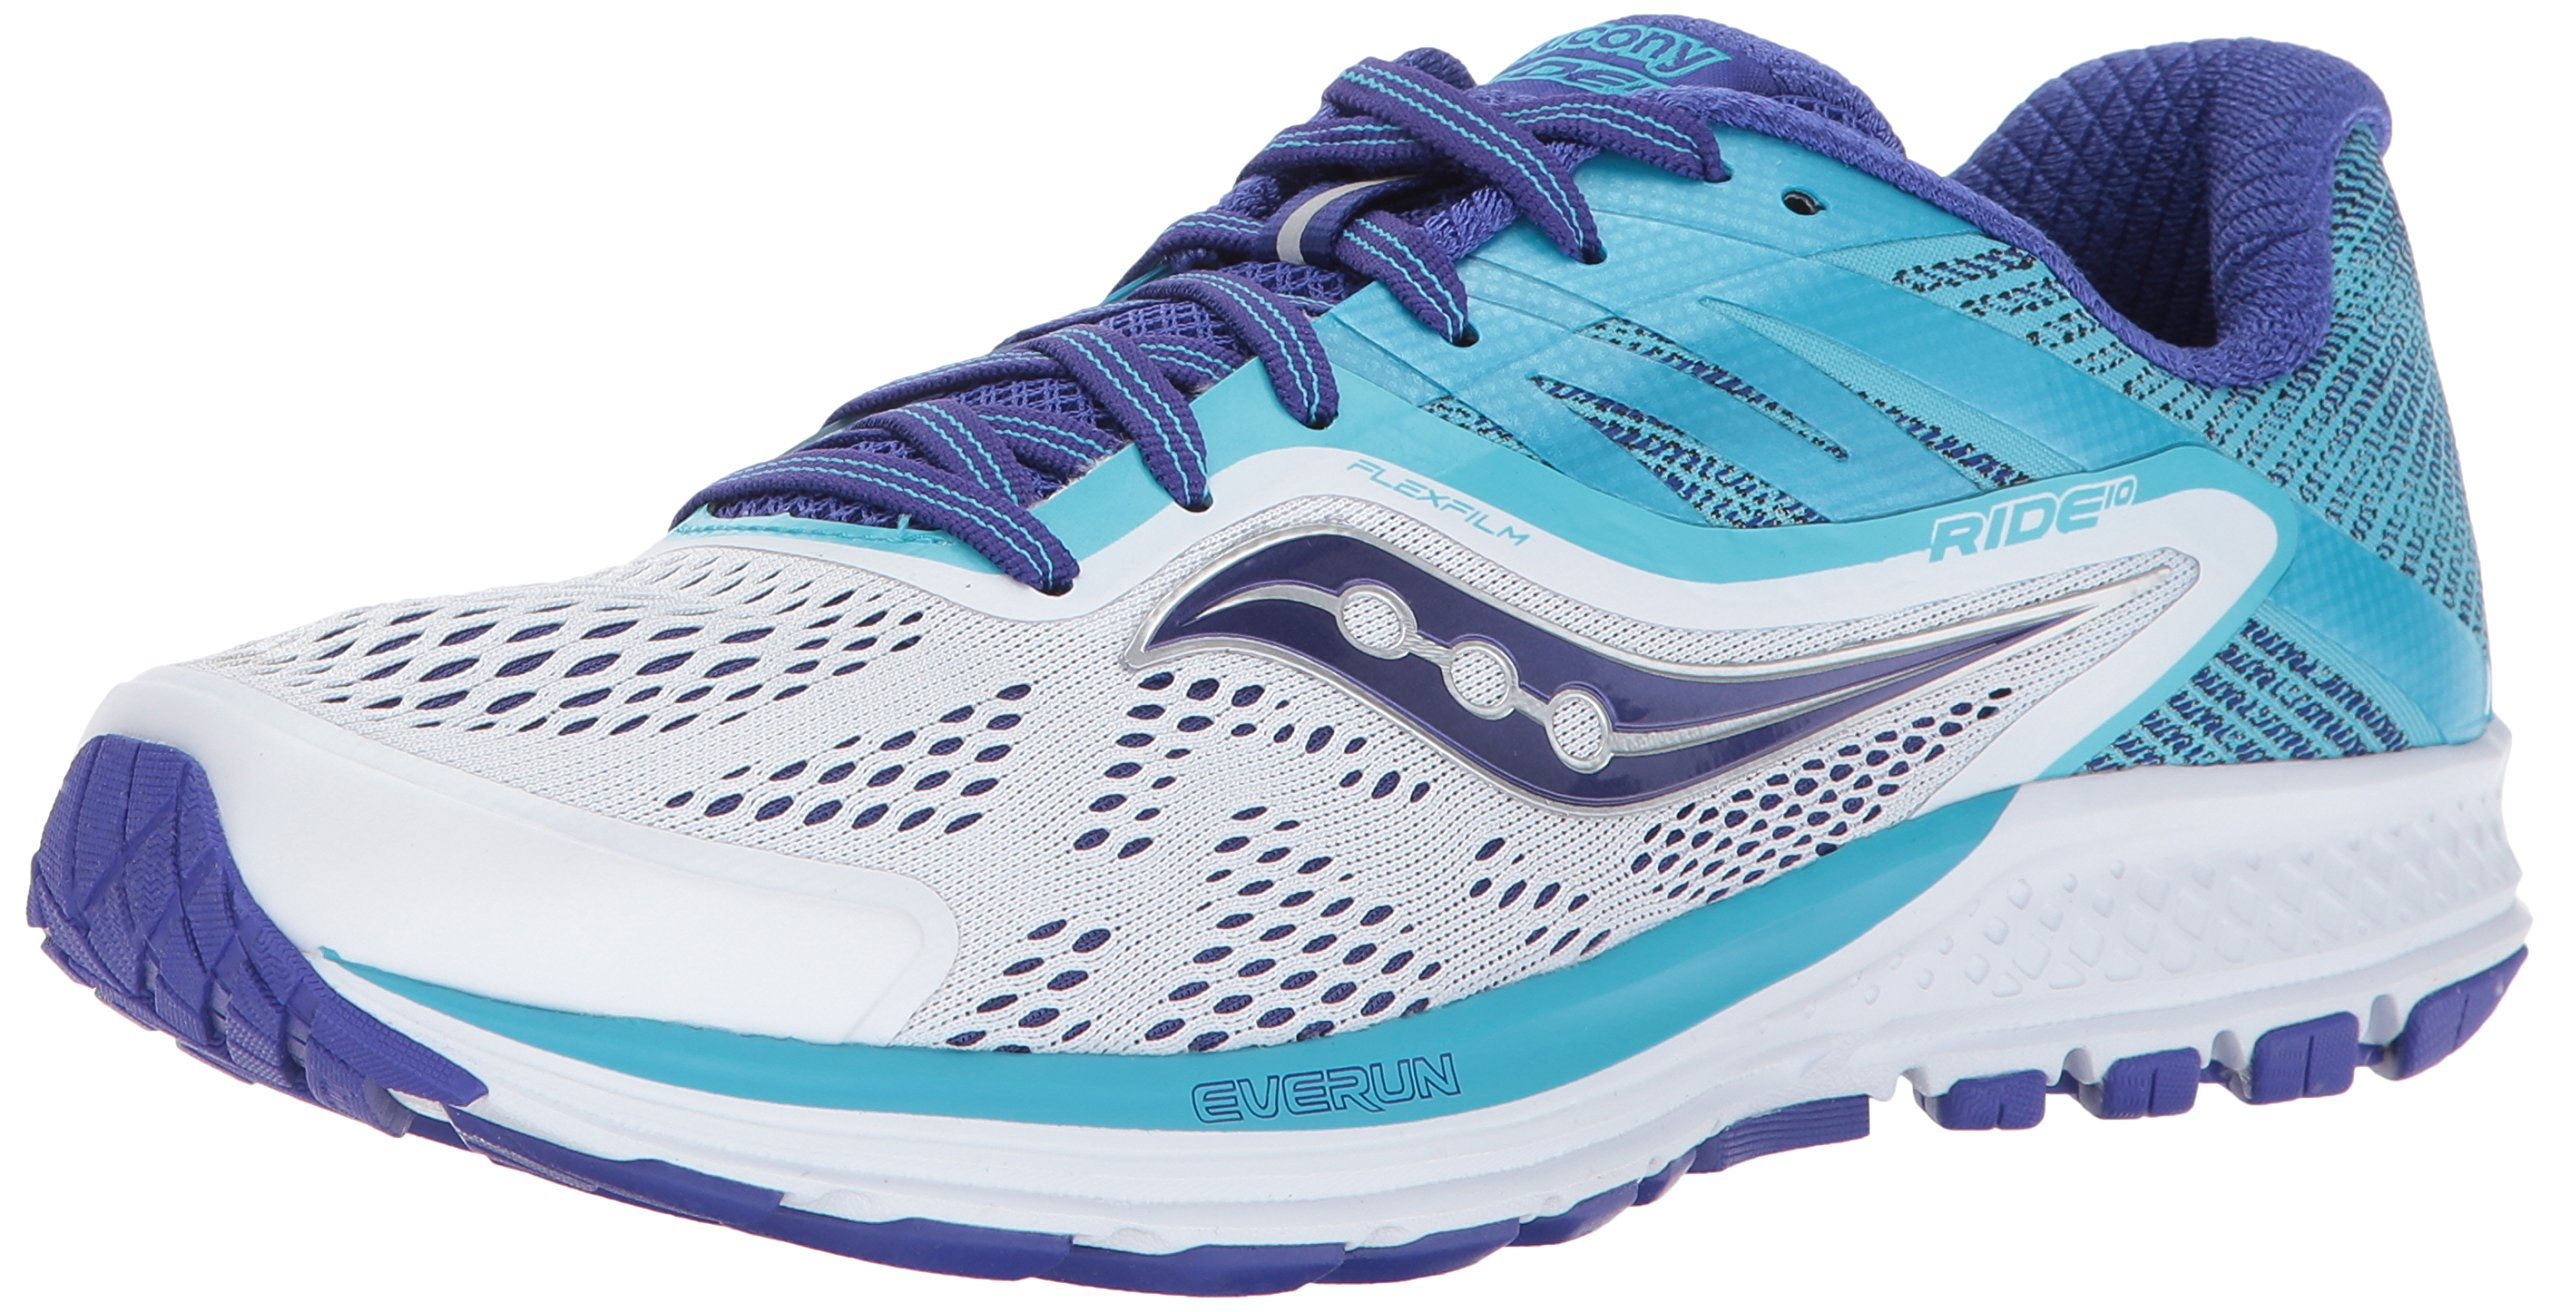 Saucony Women's Ride 10 Running Shoe, White Blue, 8 Wide US